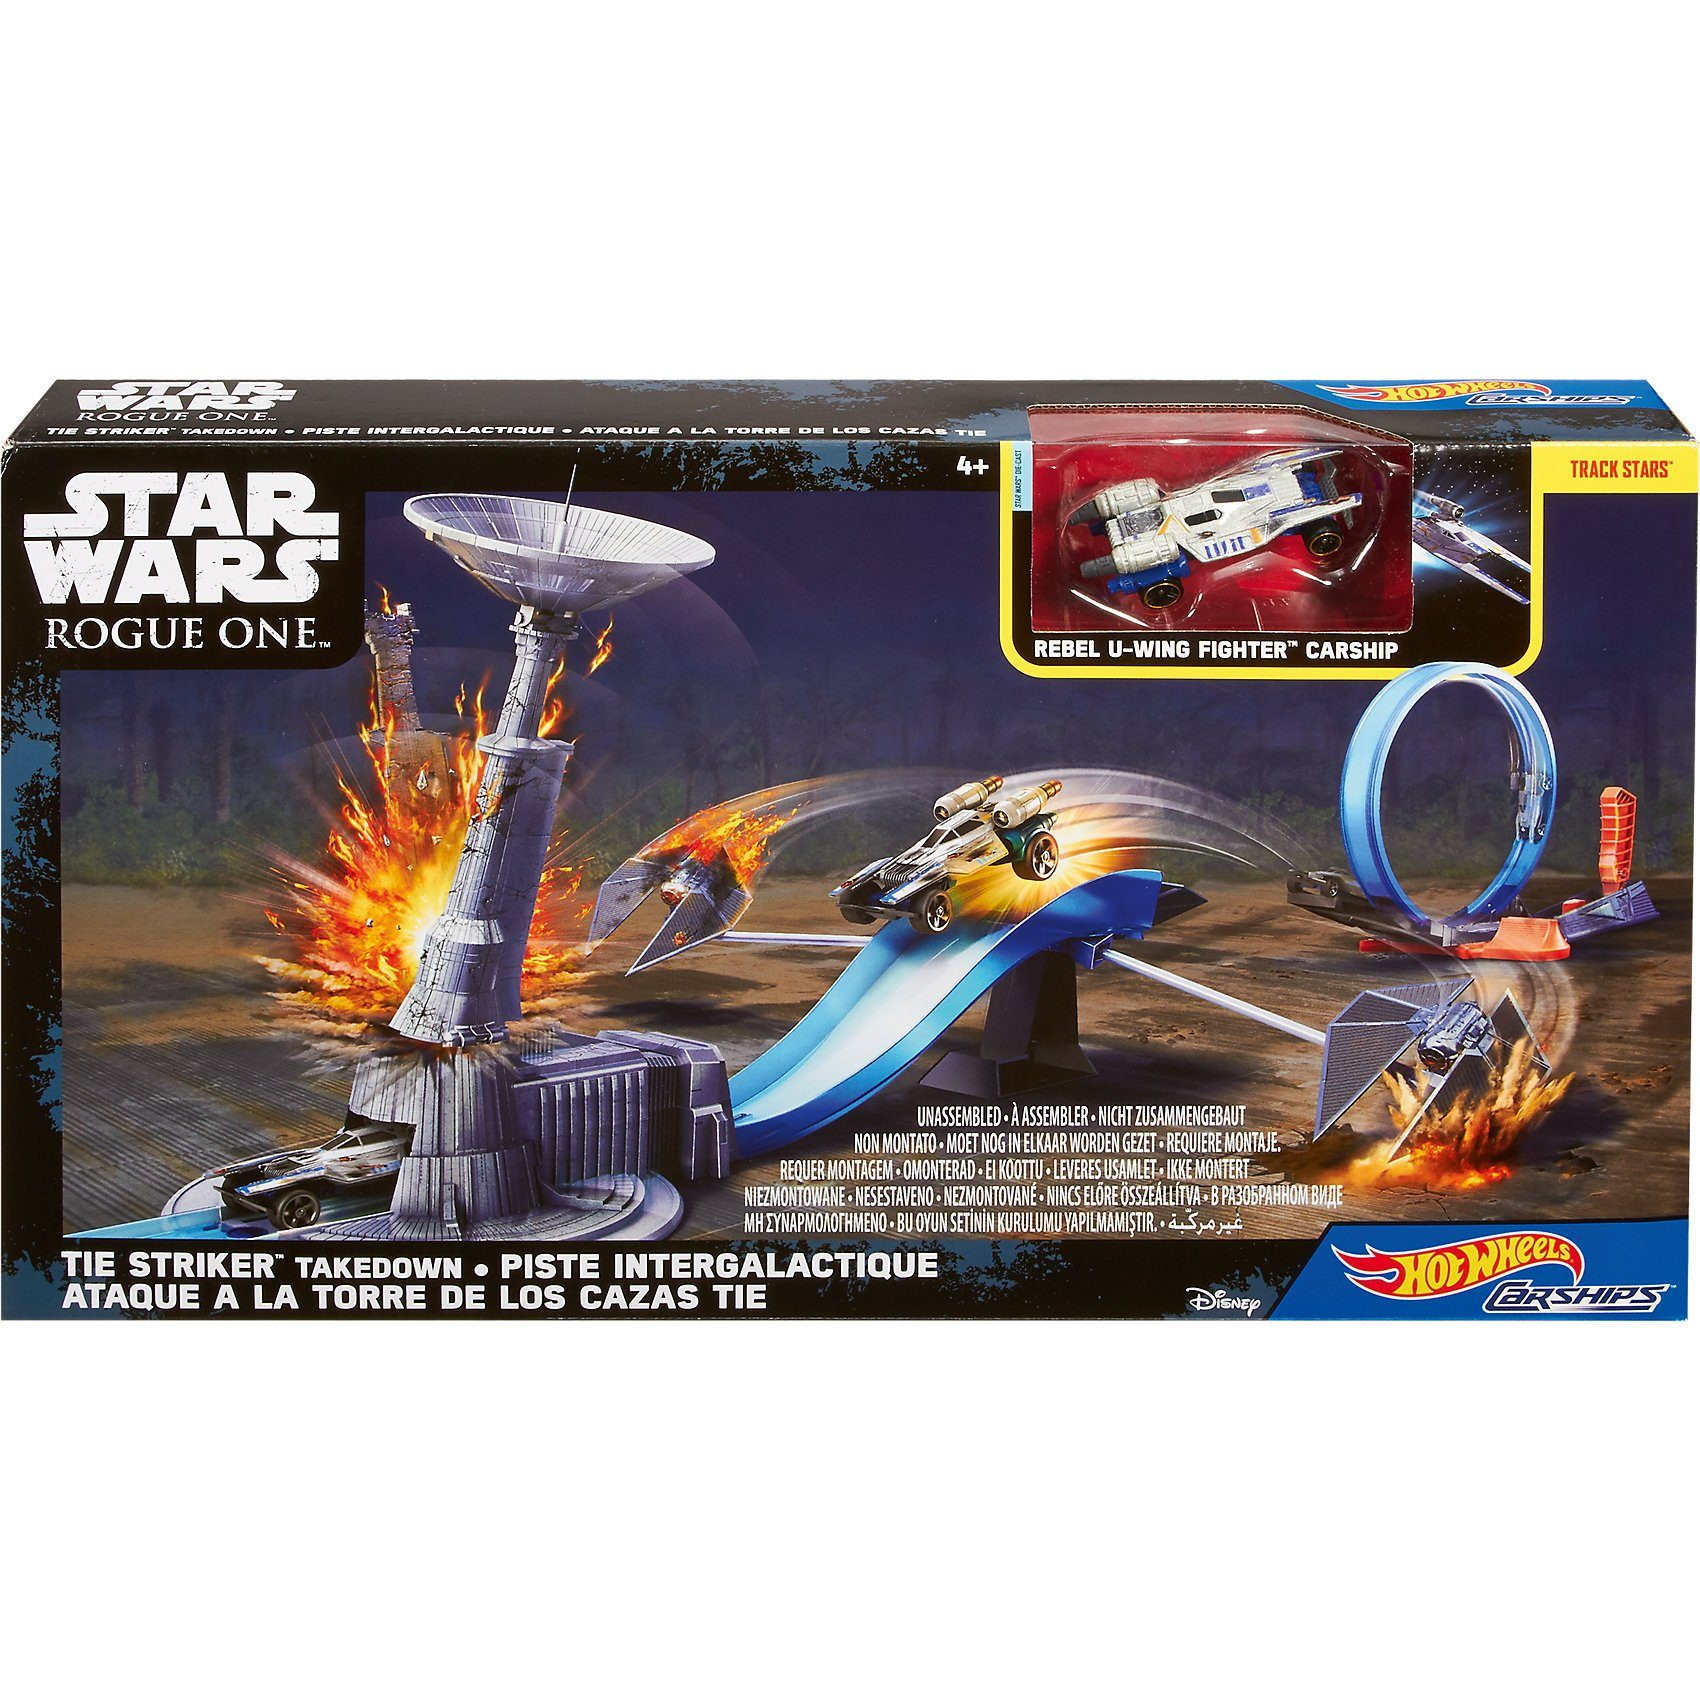 Mattel Hot Wheels Star Wars Rogue One Tie Striker Takedown Spielset